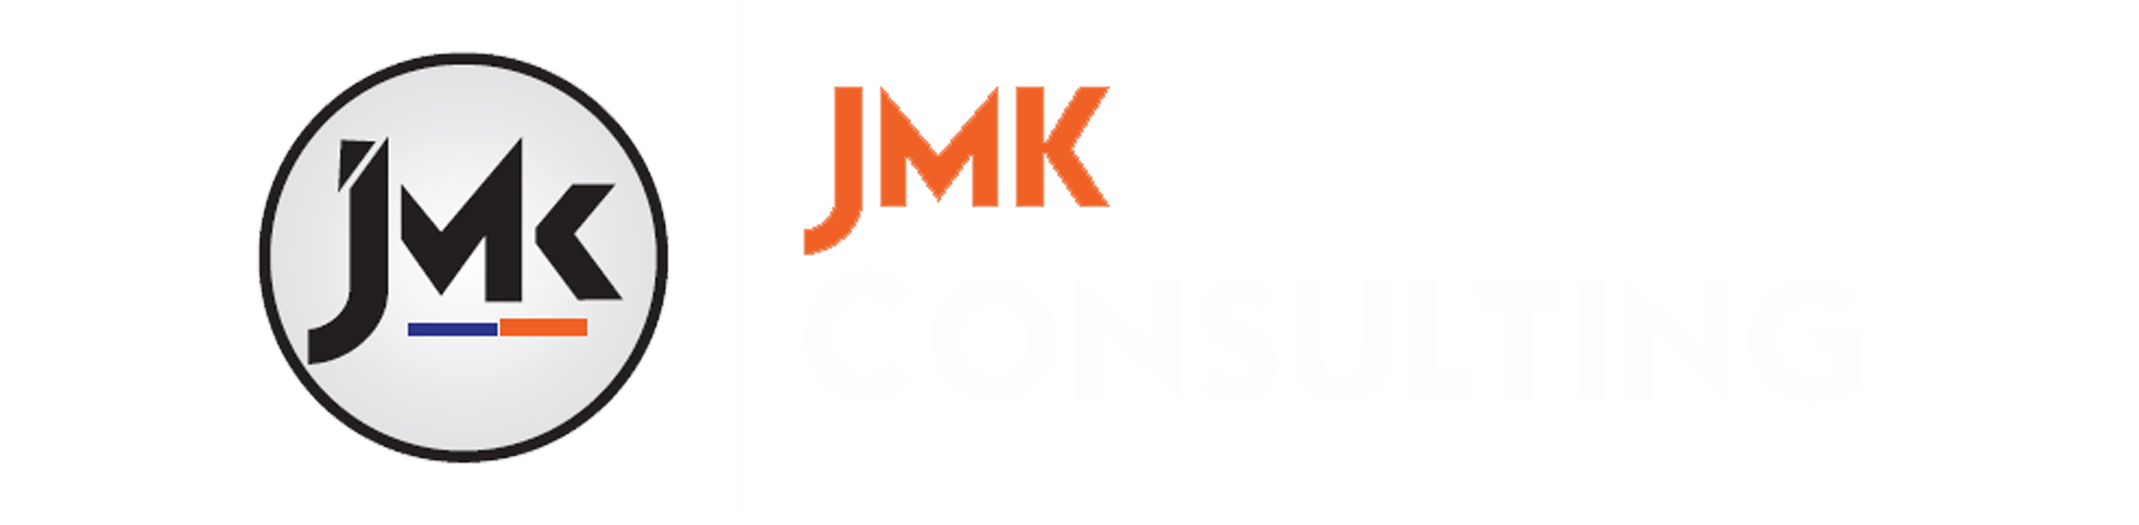 JMK Consulting Group